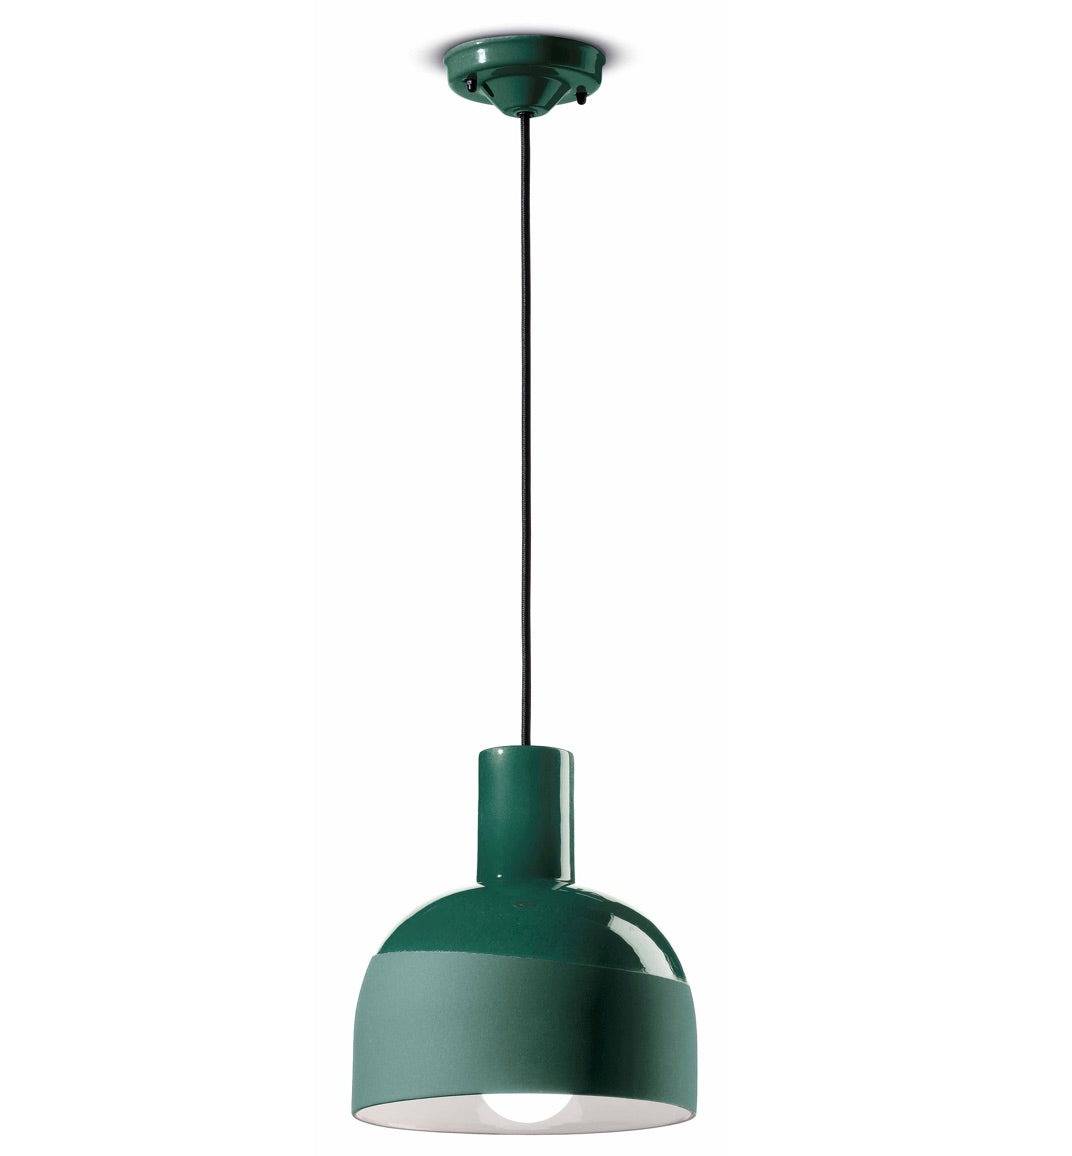 C2400 Decò Caxixi - VEB Bottle Green